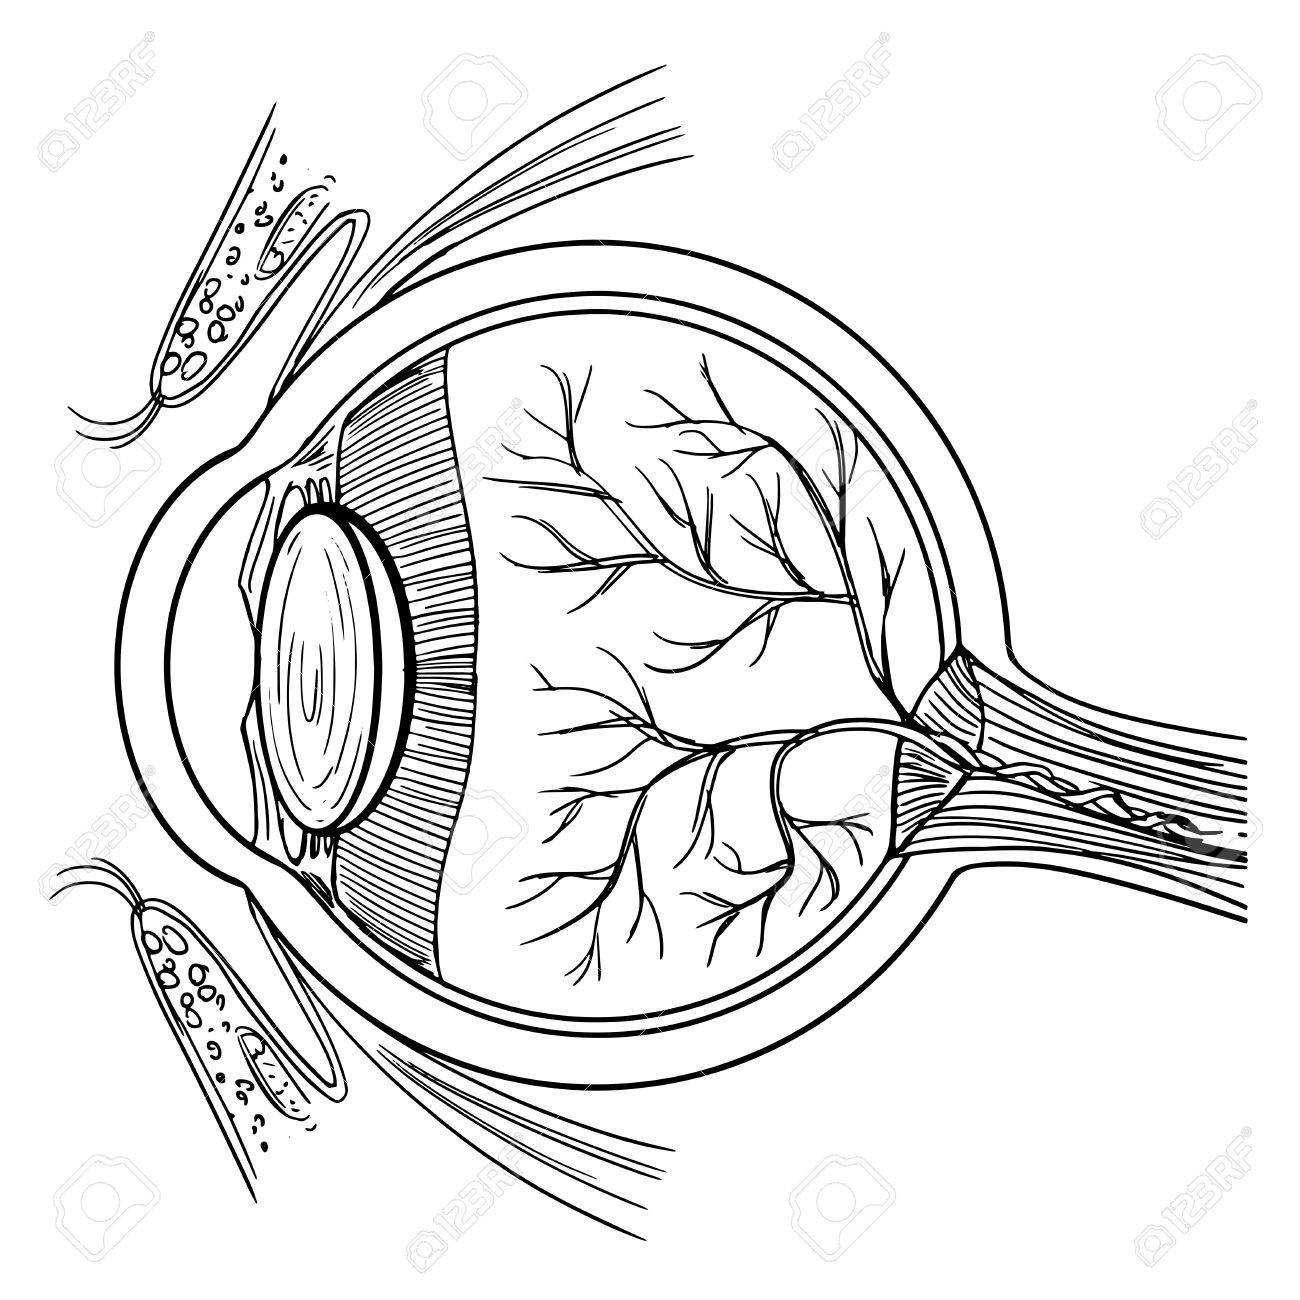 1300x1300 Illustration Of The Human Eyeball On A White Background Royalty